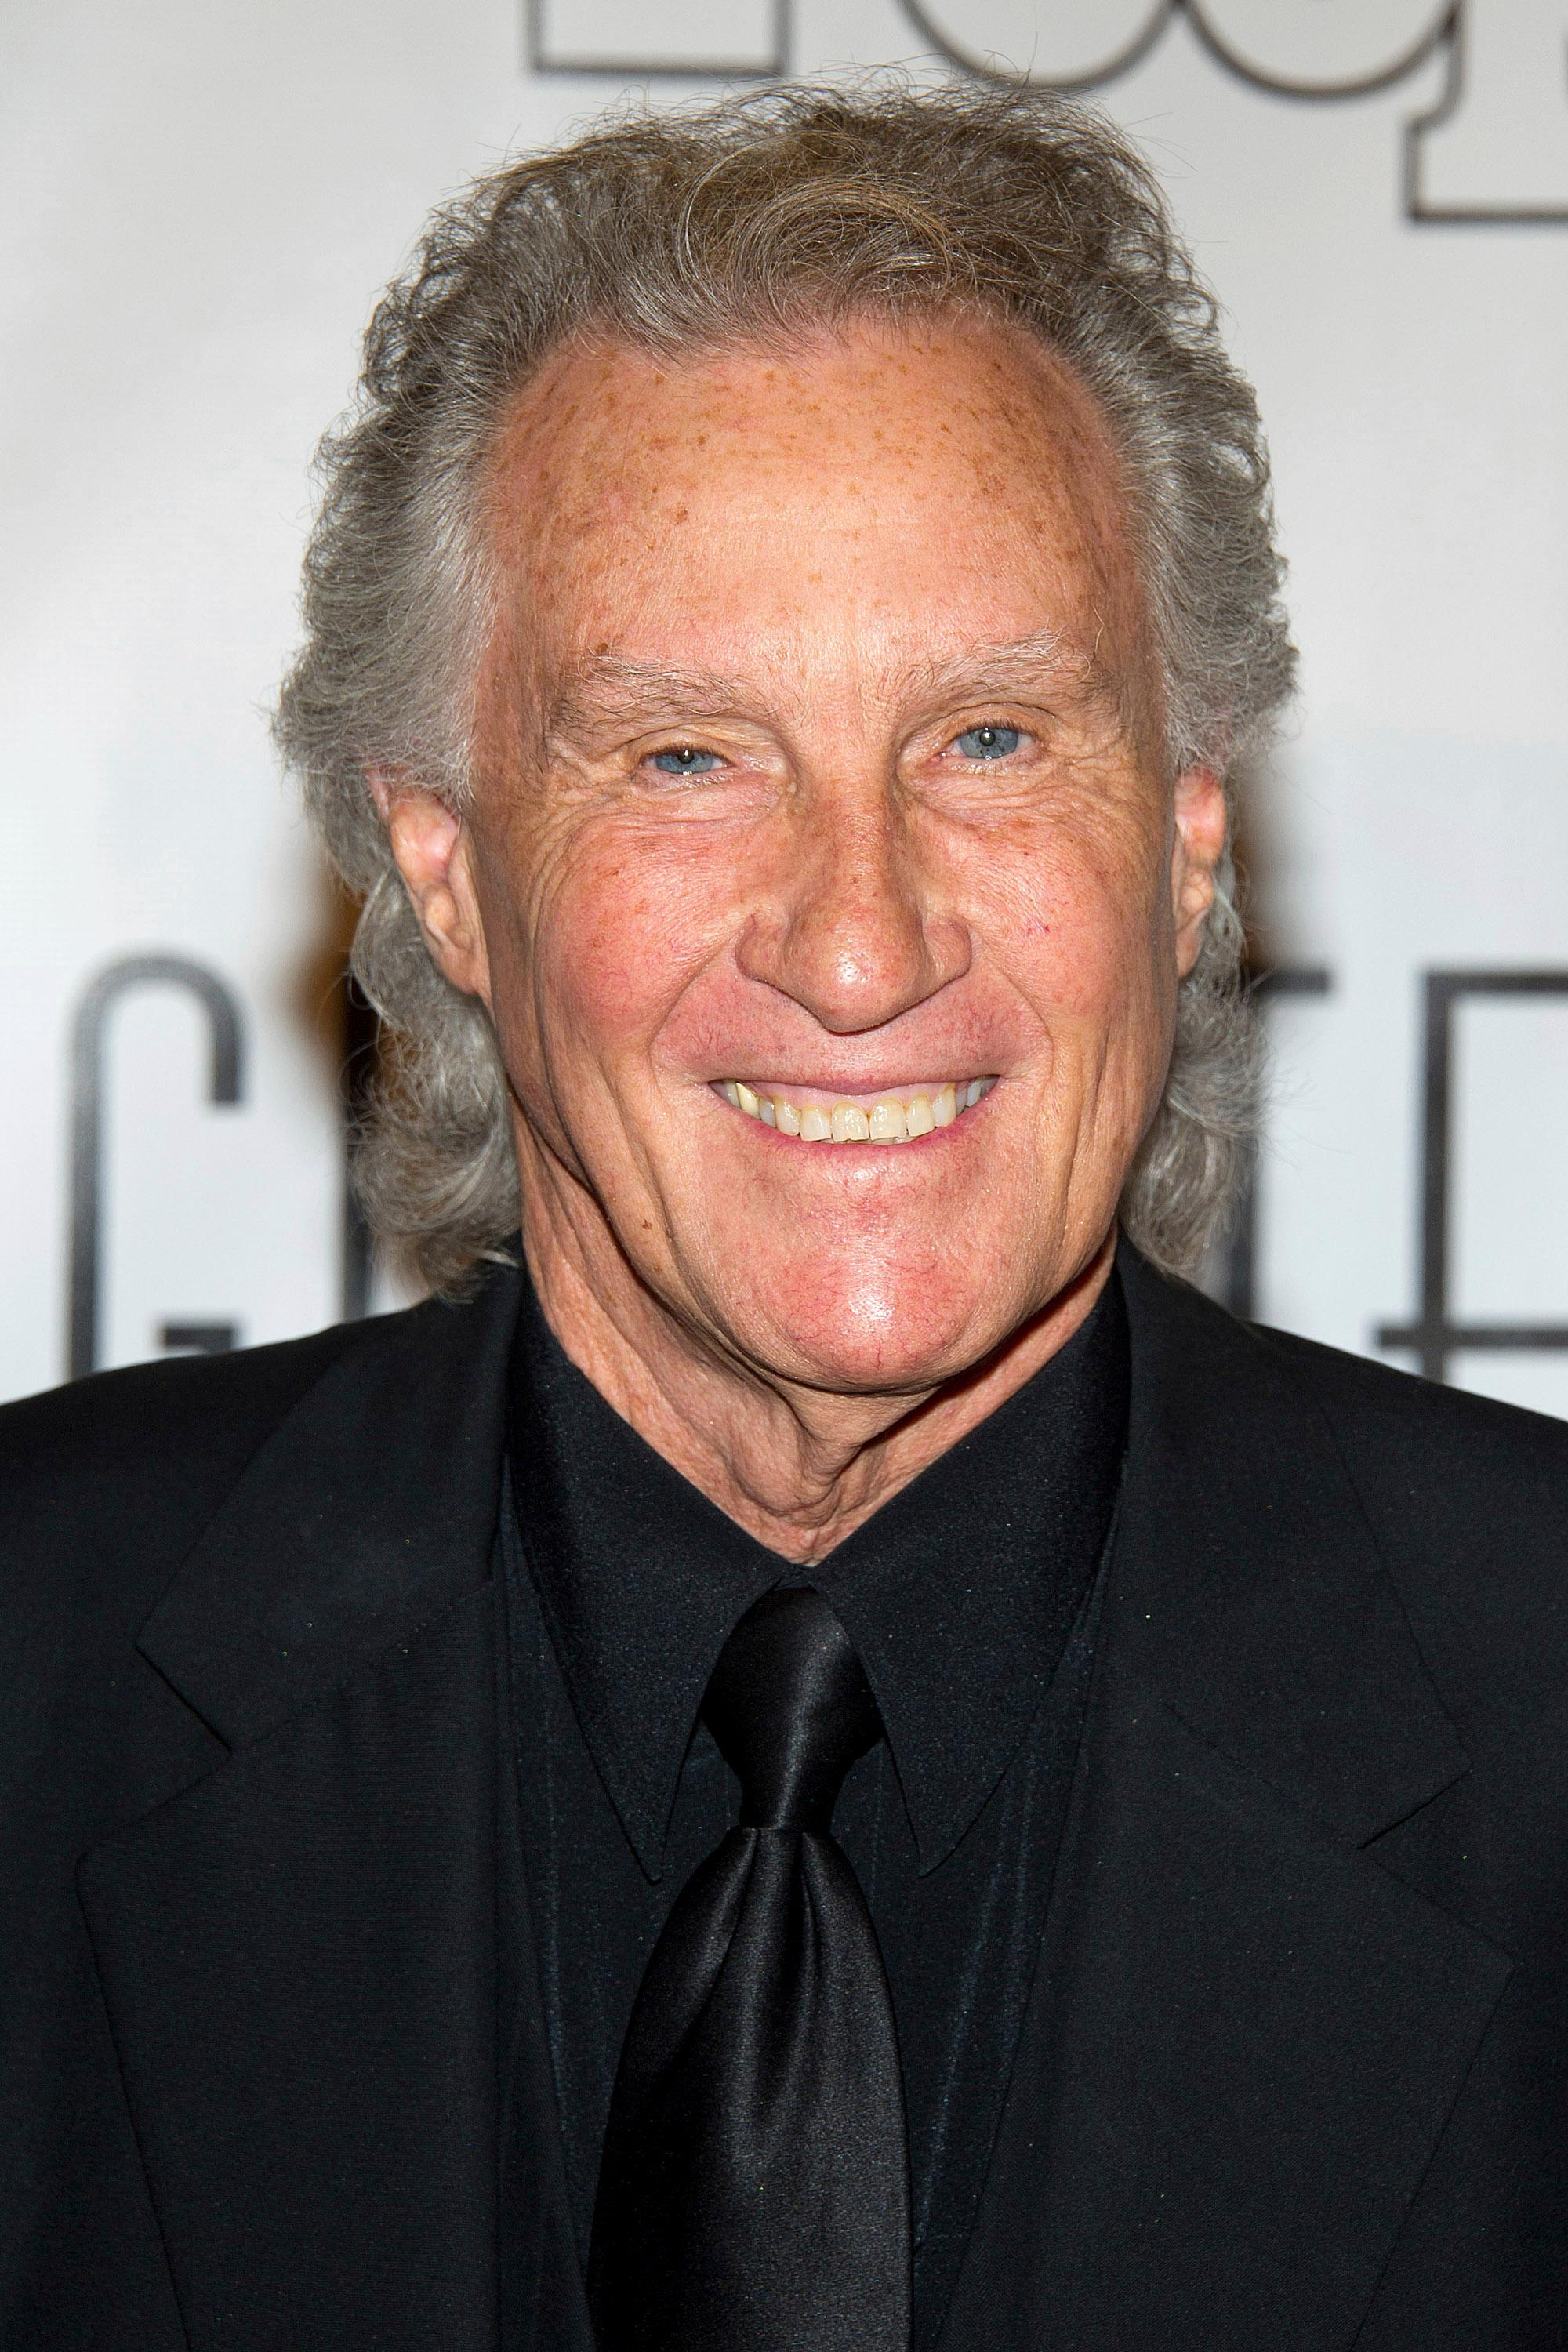 This June 16, 2011 file photo shows singer Bill Medley at the 42nd Annual Songwriters Hall of Fame Awards in New York. Medley are scheduled to make an appearance during Elvis Week in Memphis,   which also coincides with the 40 anniversary of Elvis Presley's death. (AP Photo/Charles Sykes, File)